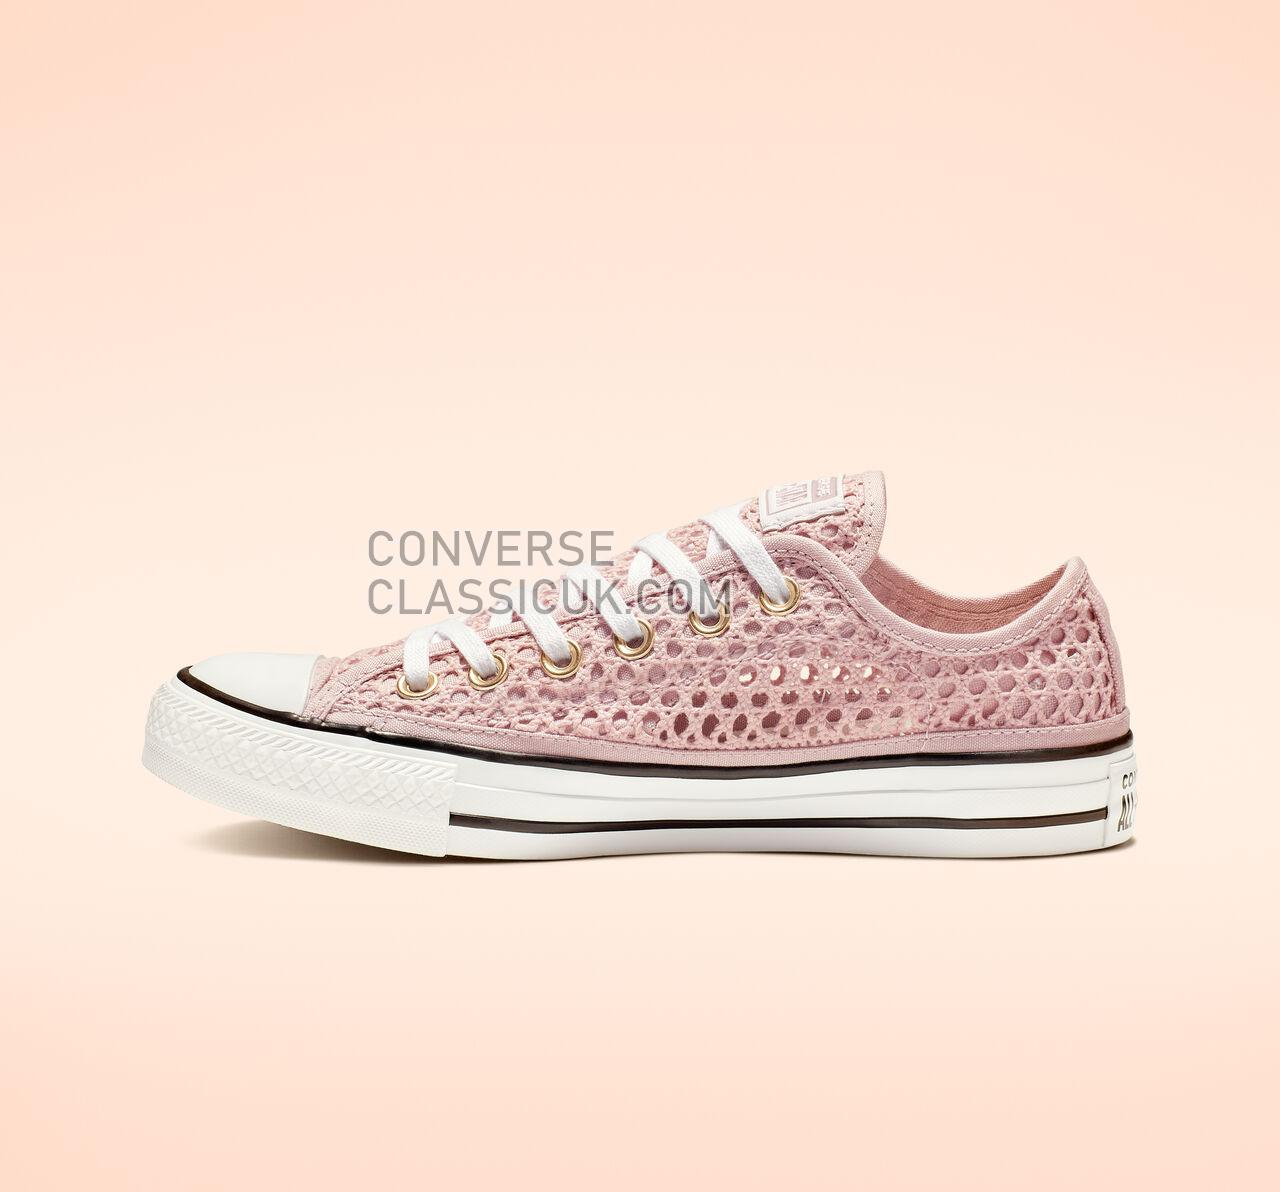 Converse Chuck Taylor All Star Crochet Low Top Womens 564872C Plum Chalk/White/Black Shoes